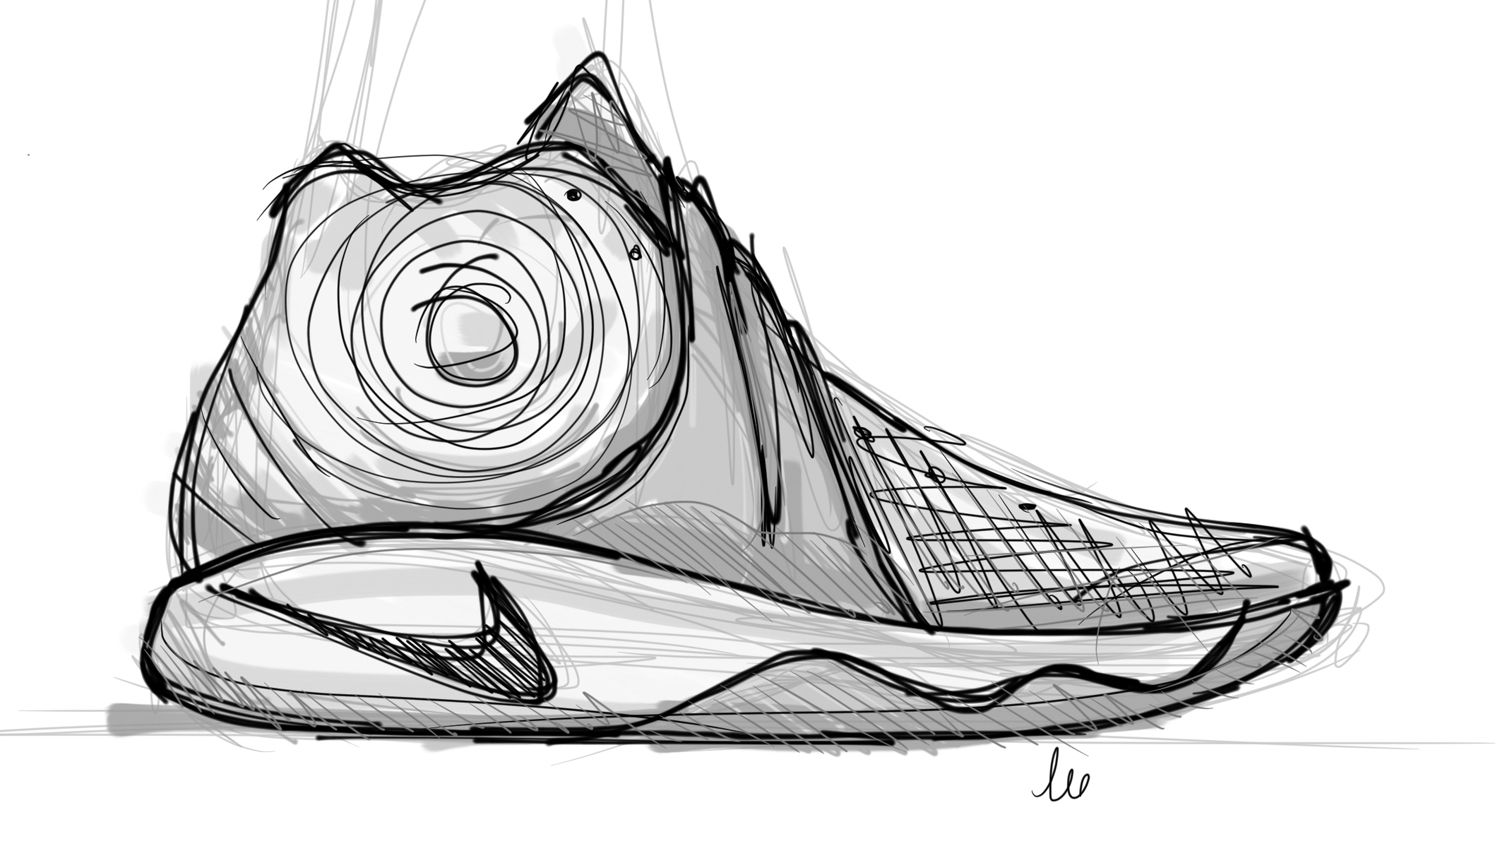 drawing of shoes image pair of shoes drawing at paintingvalleycom explore of shoes drawing image